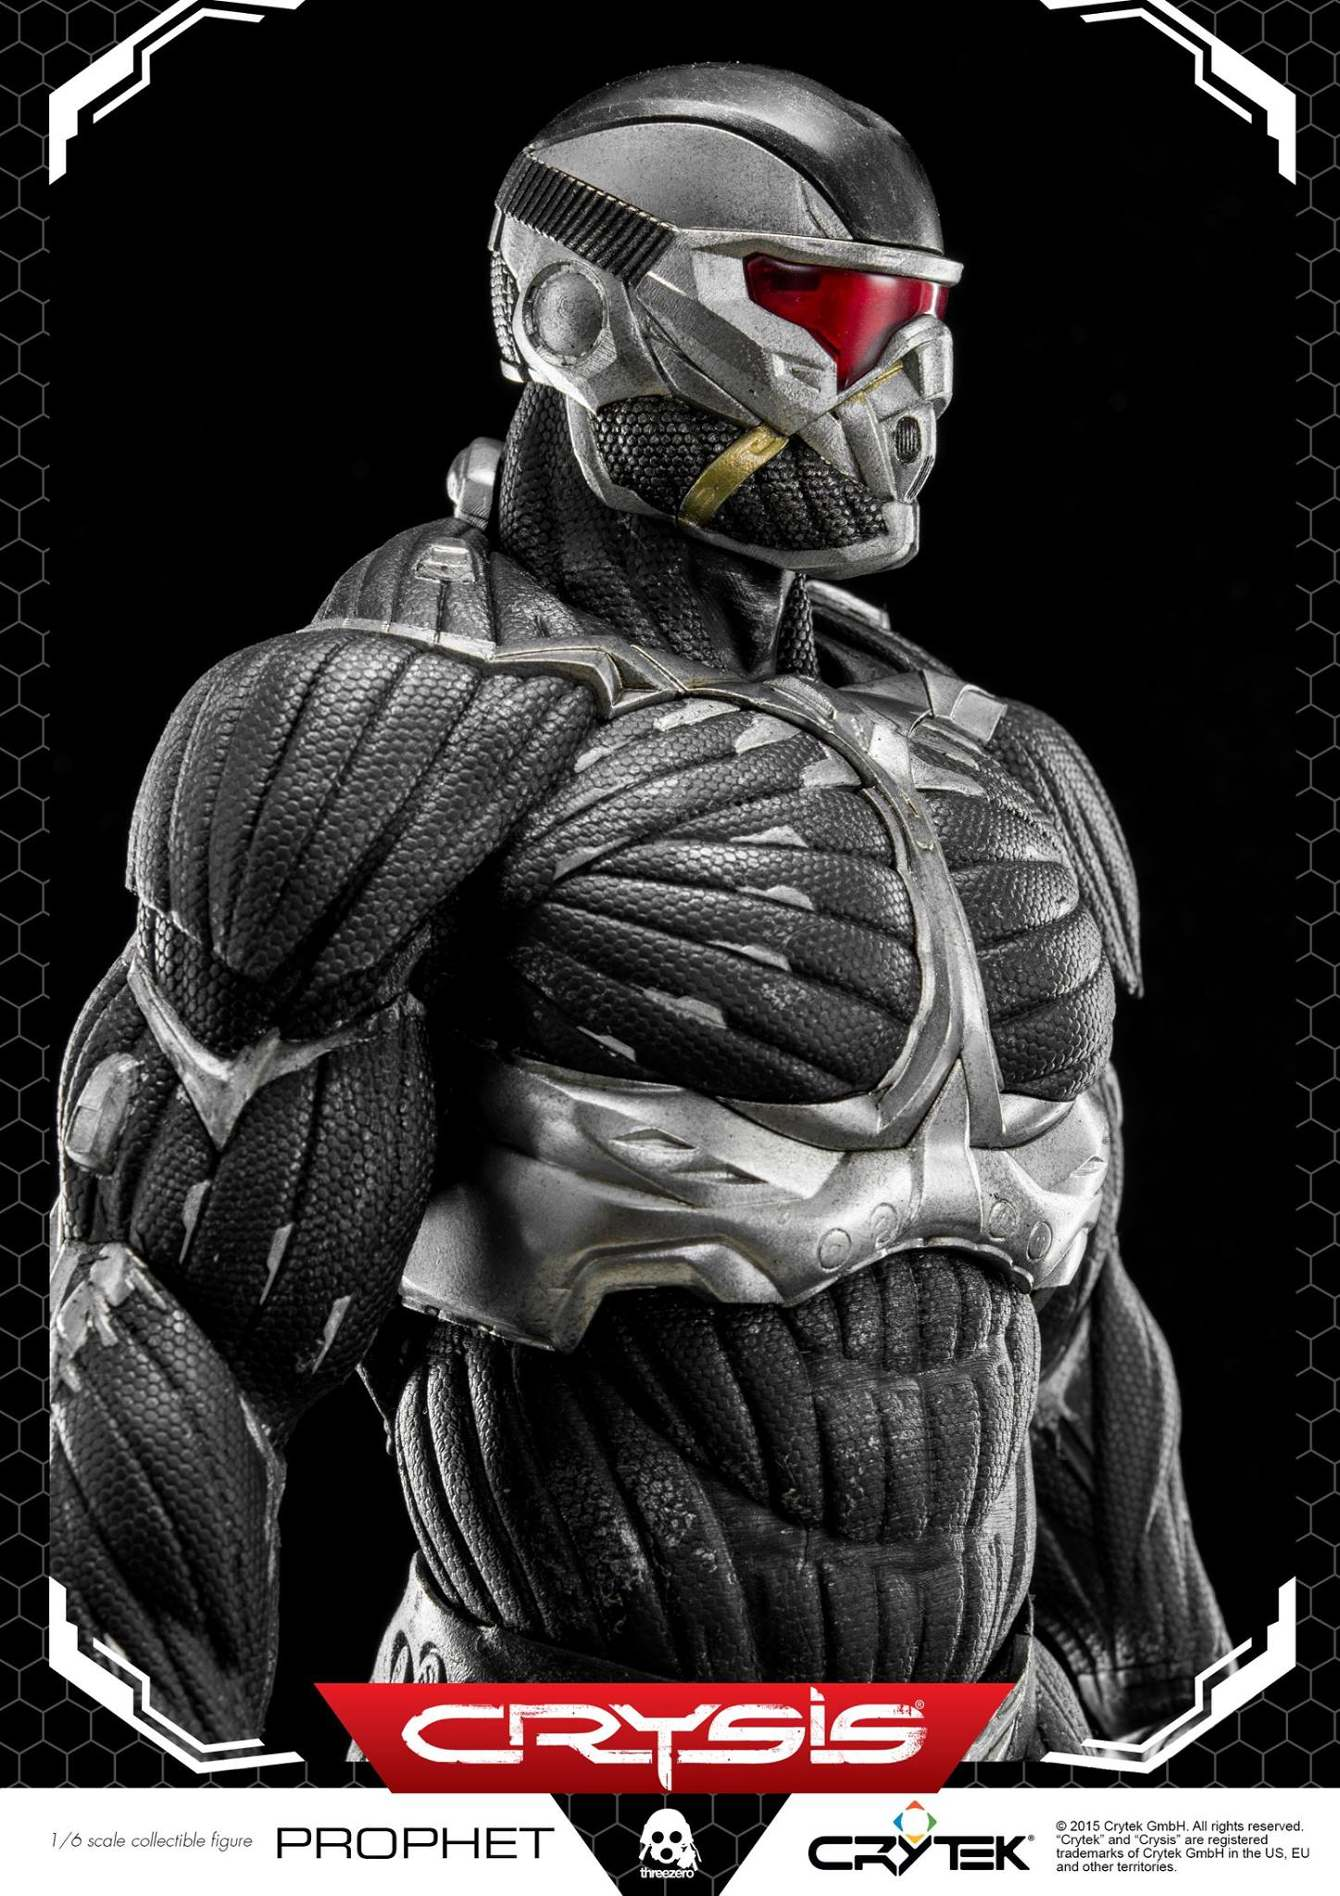 ThreeZero-Crysis-video-game-Prophet-CRY10_1340_c.jpg